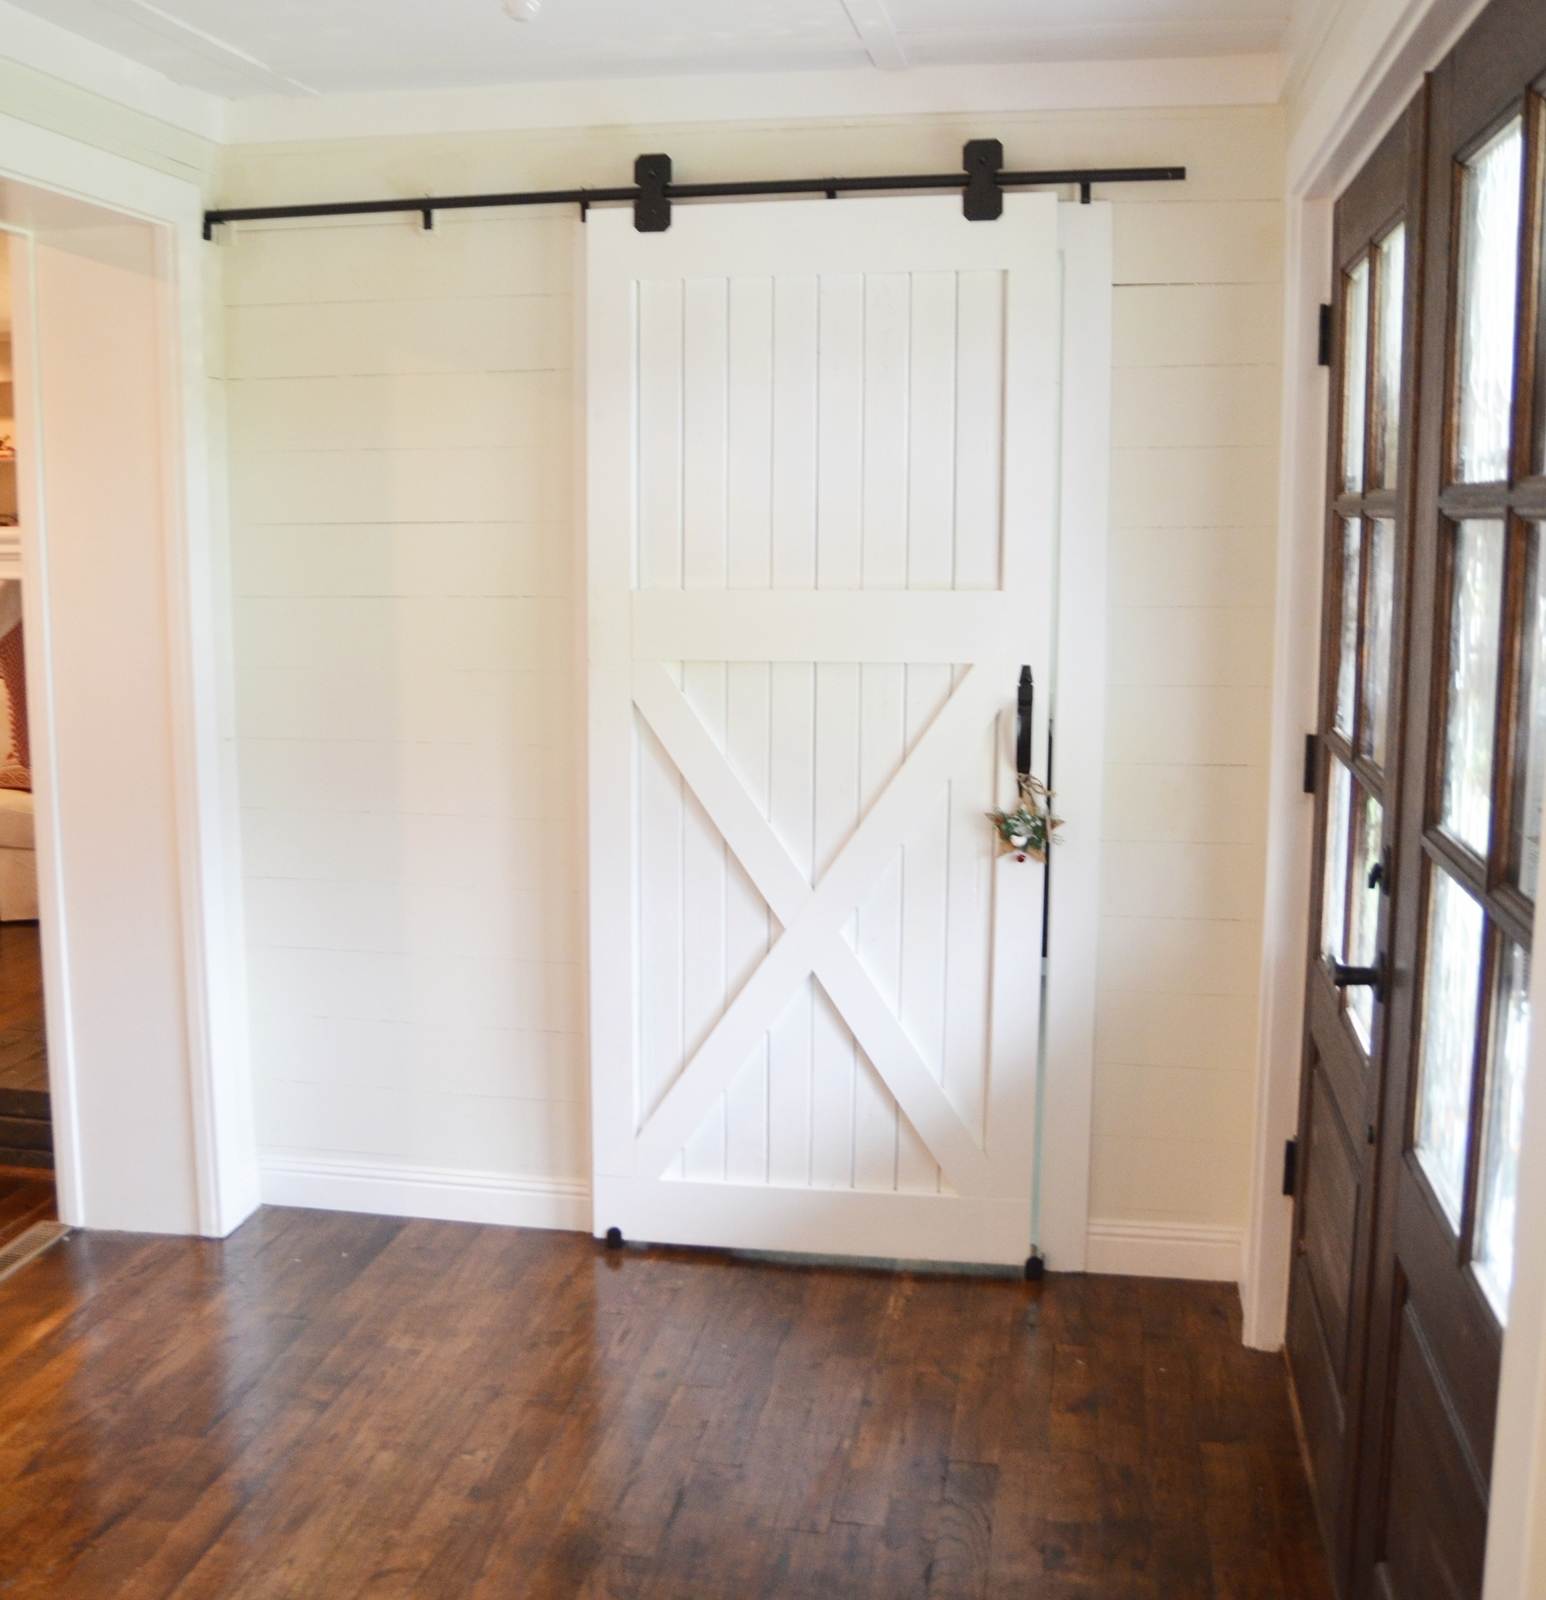 Diy Interior Designer: DIY Barn Door Designs And Tutorials From Thrifty Decor Chick